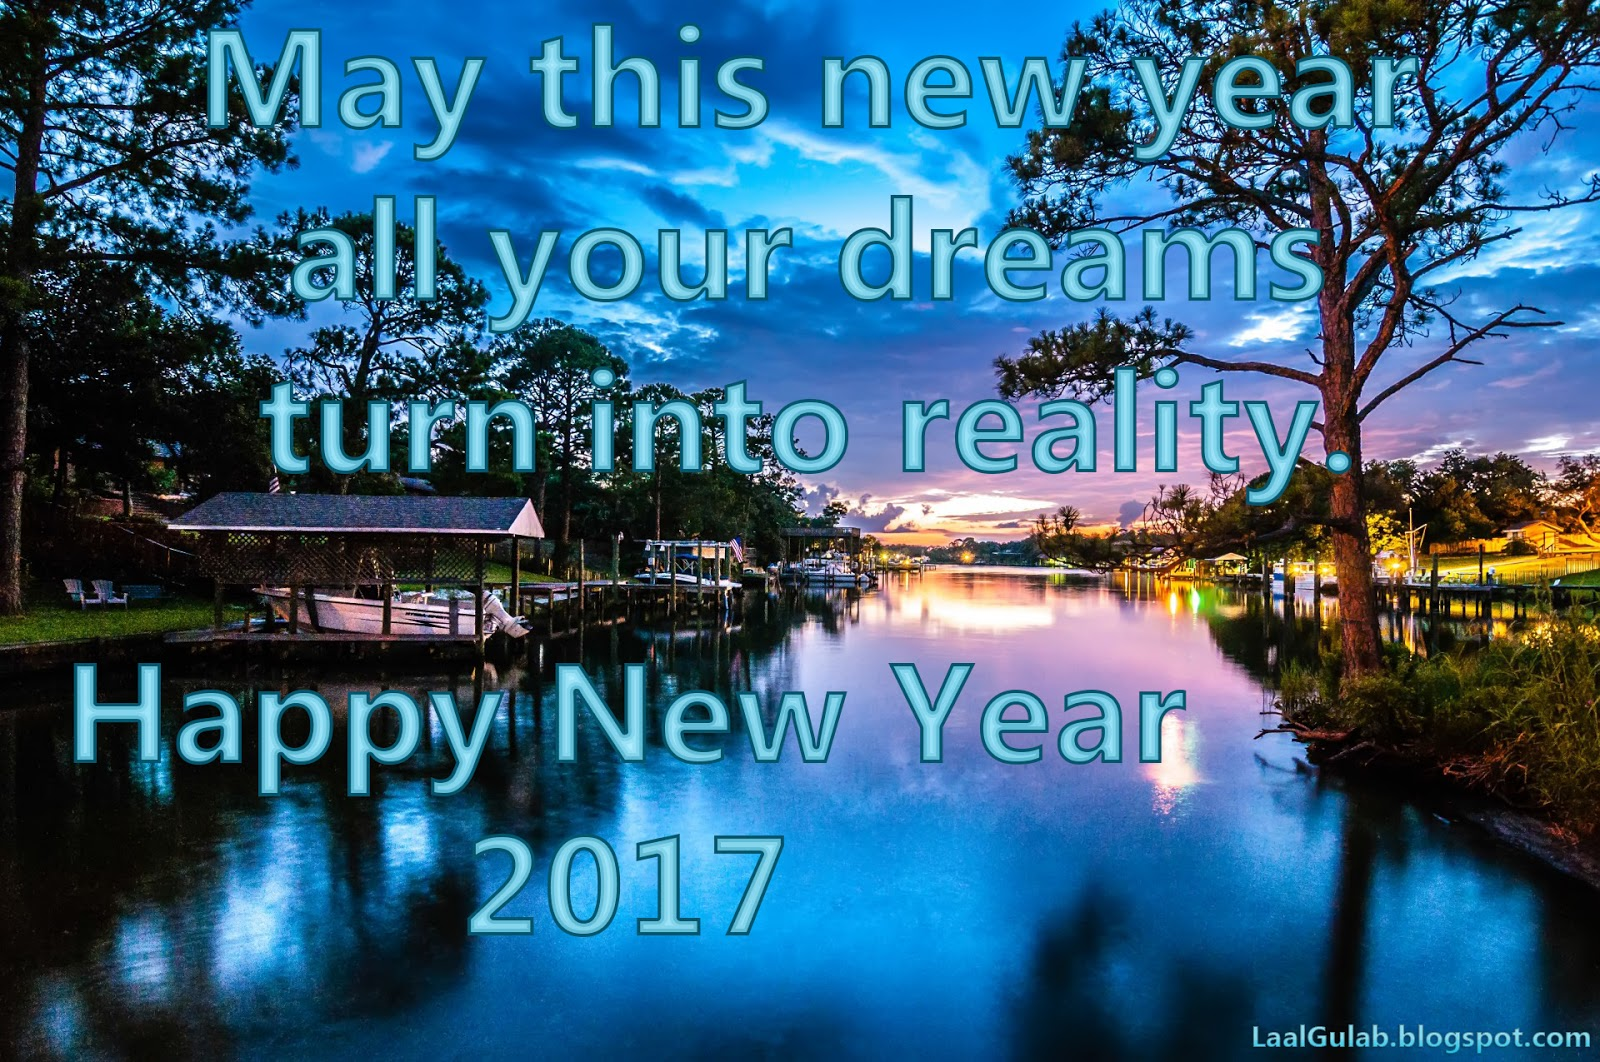 happy new year 2017 wallpapers hd images happy new year 2017